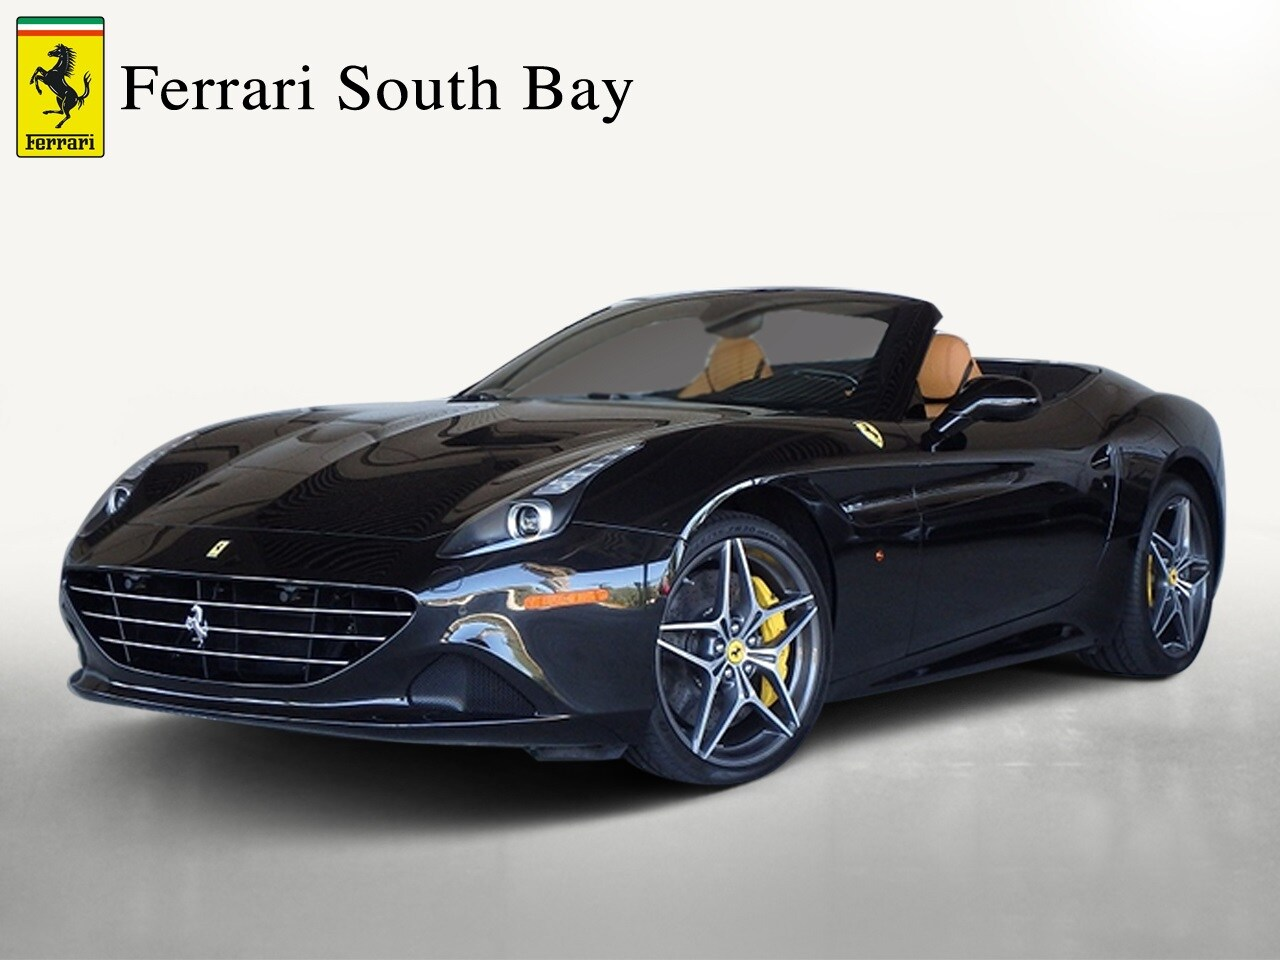 Certified Pre-Owned 2015 Ferrari California T Convertible For Sale Torrance, California